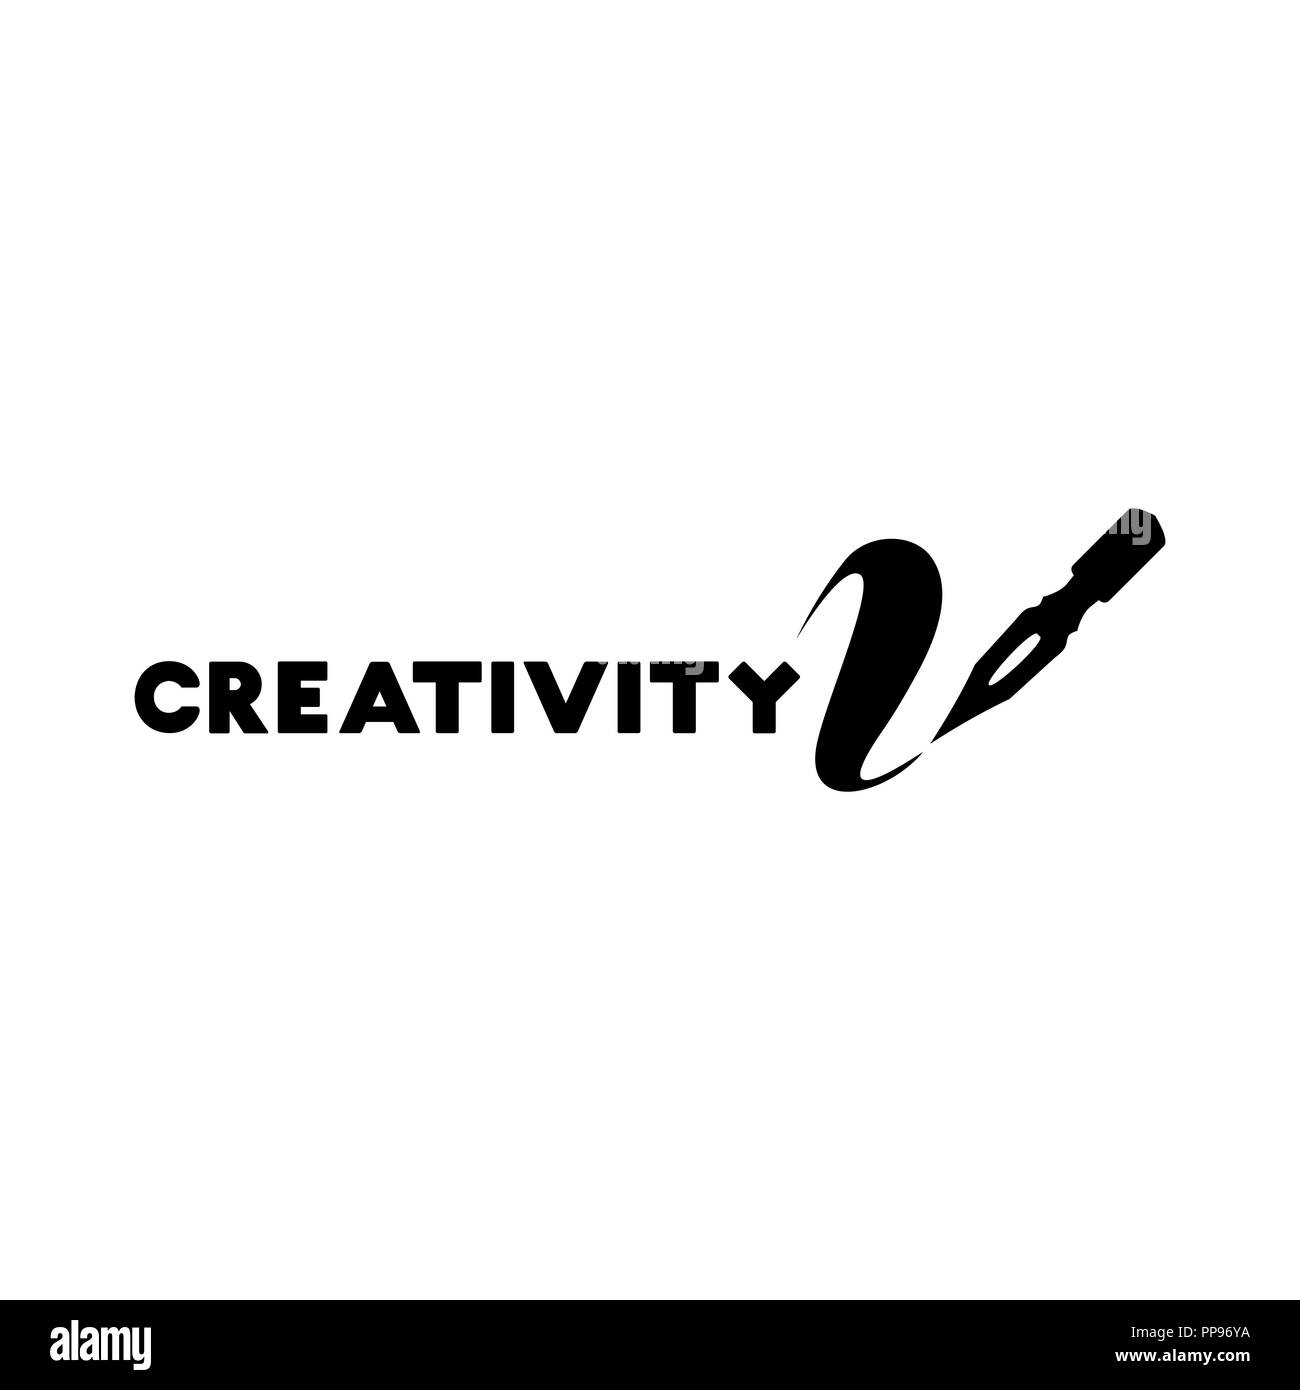 Creativity lettering logo isolated design. Craft shop sign with calligraphic pen. Black metal laser cut sign. Art and creative logotype for store layout or branding. Isolated vector - Stock Image